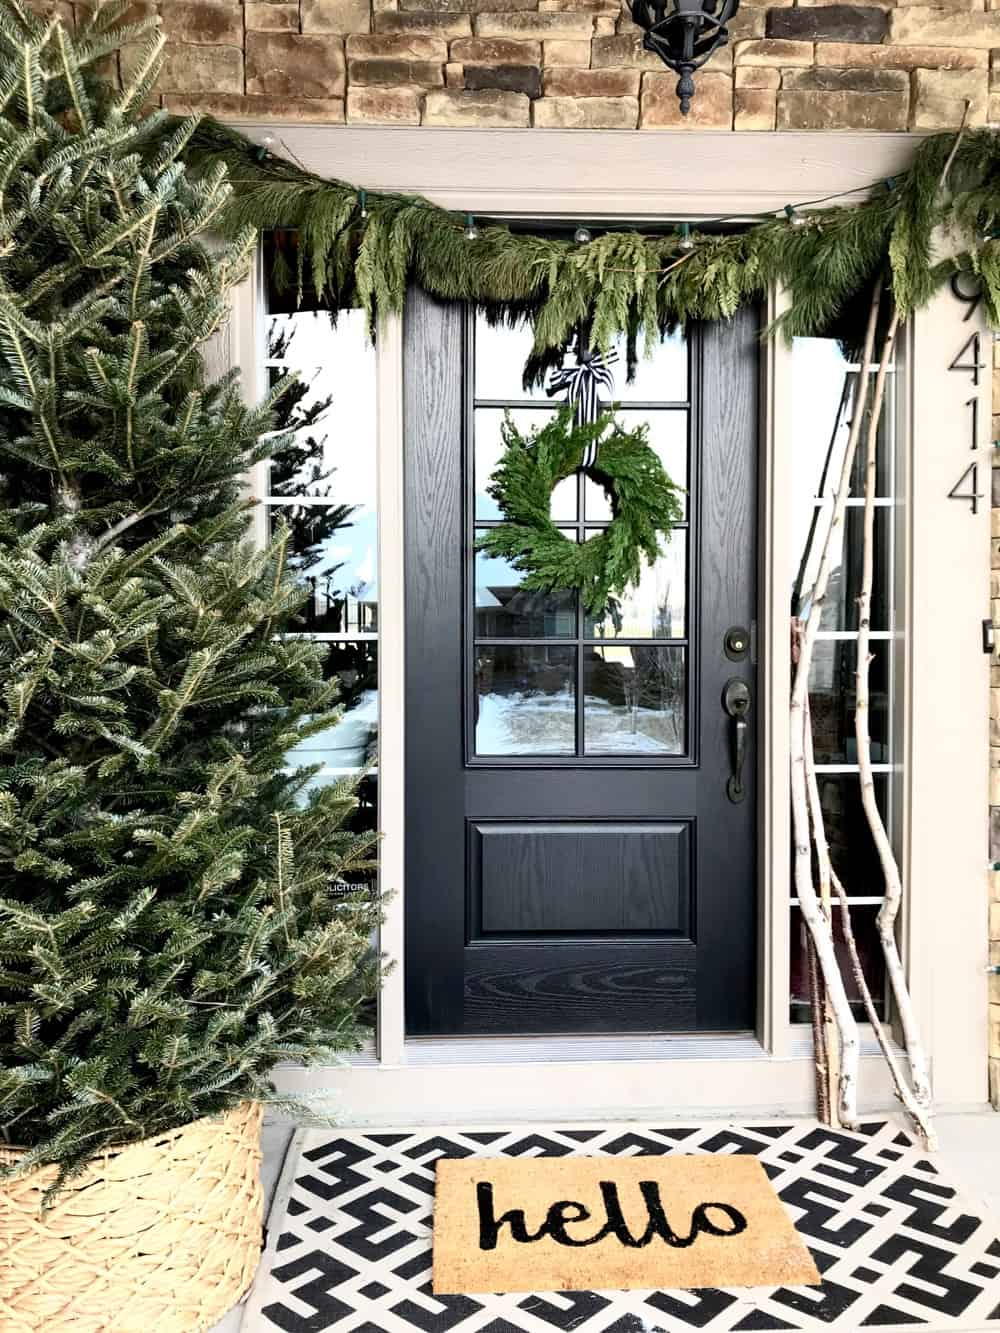 Love this Winter porch with a giant tree and all the black and white decor.